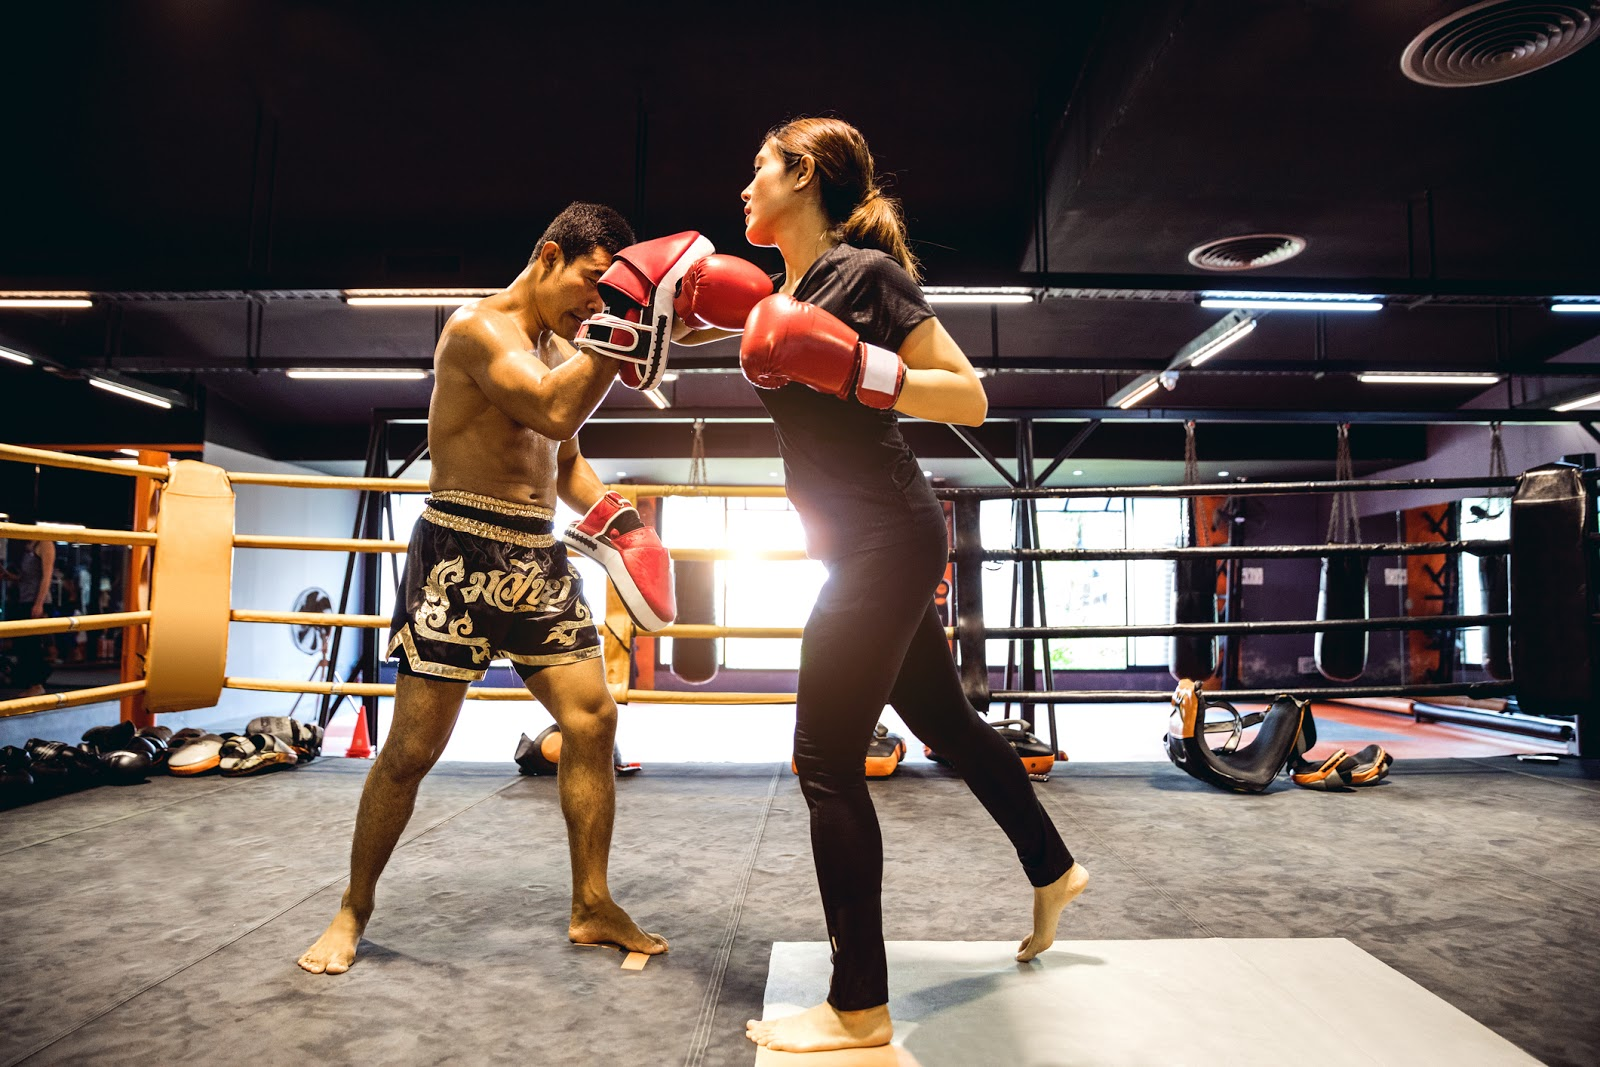 Man training a woman using punch pads in a boxing gym.